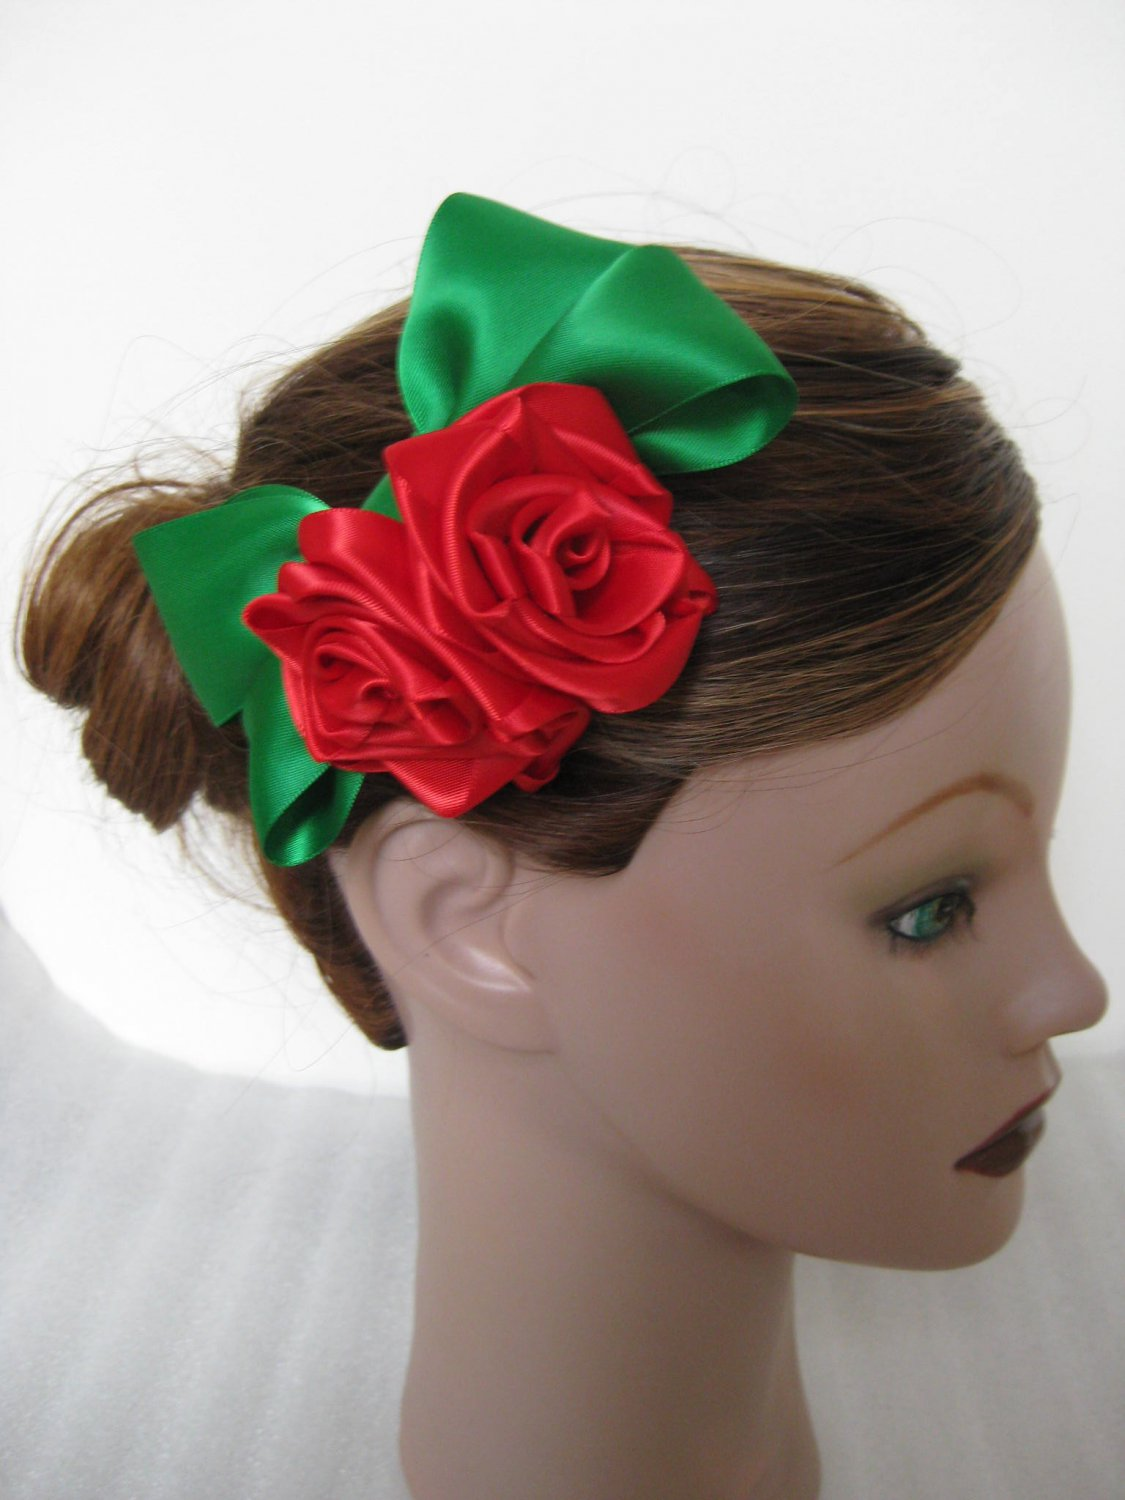 Girls Ladies Christmas GREEN RED Satin Rose Hair Bow Clip Barrette